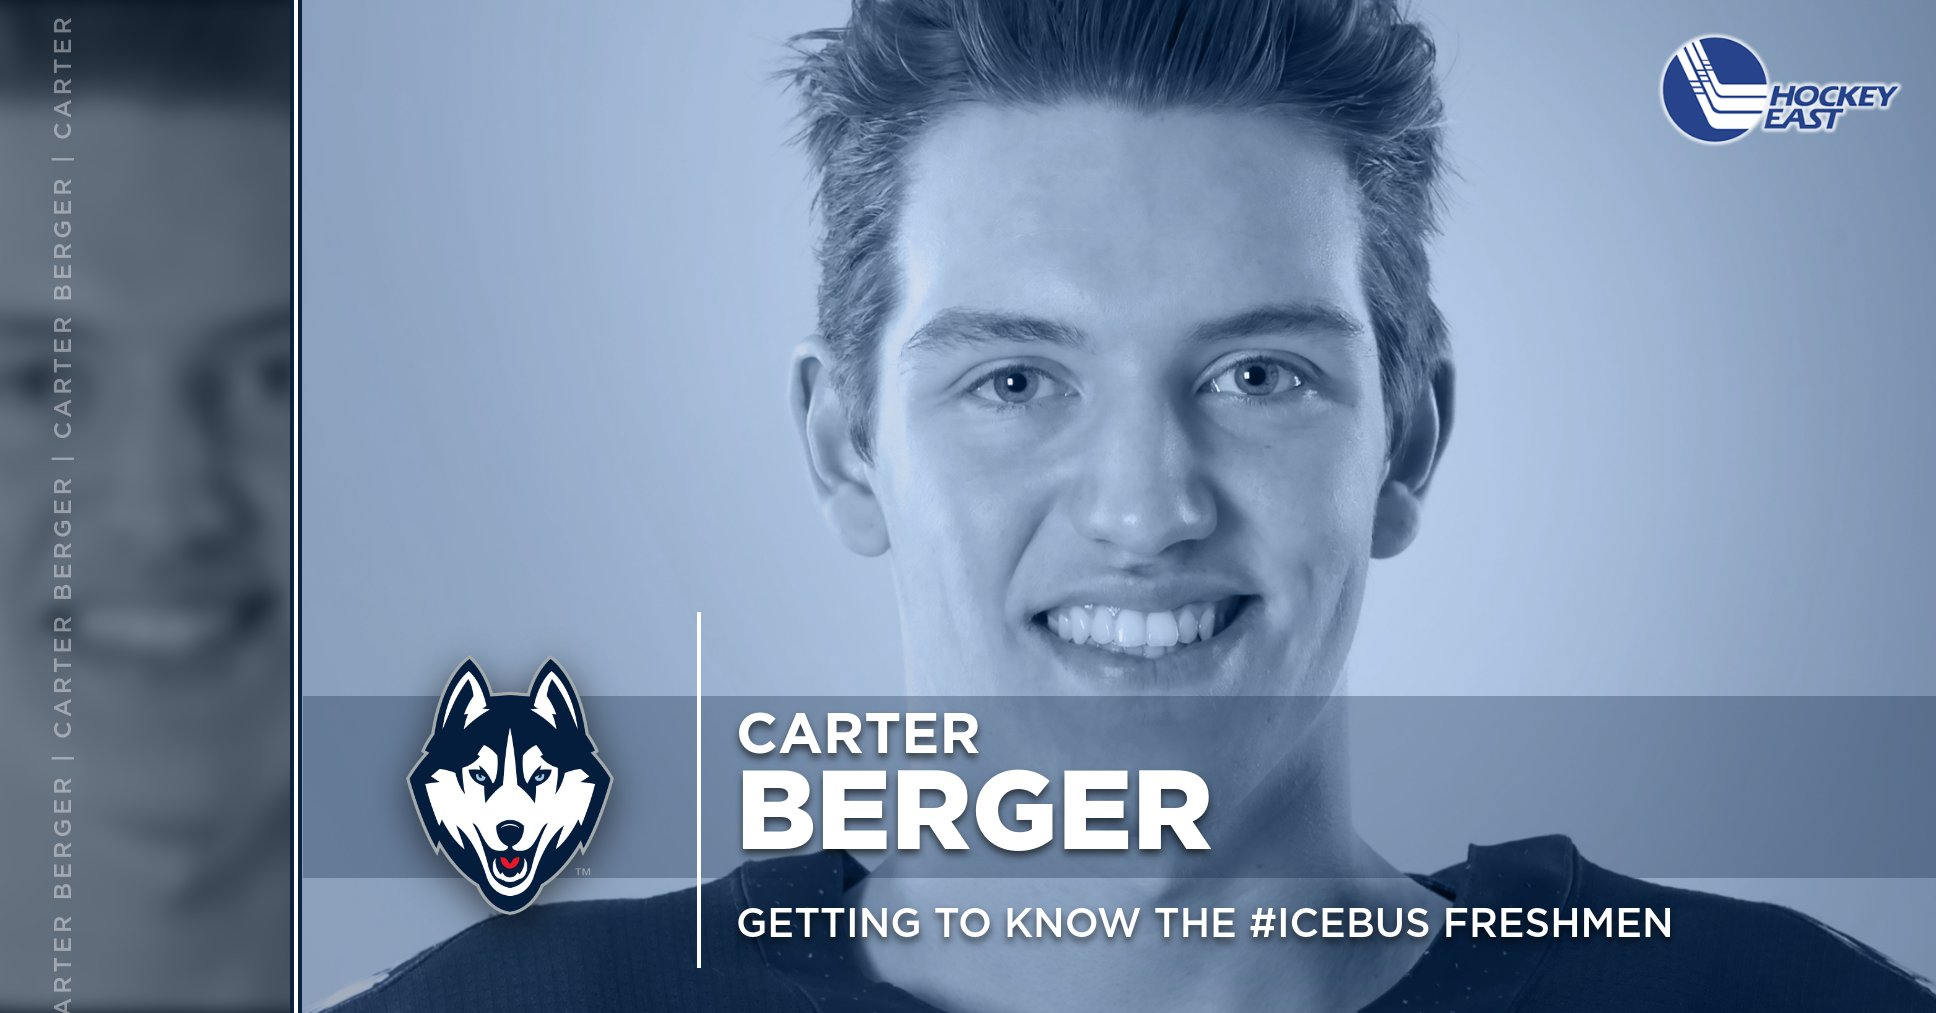 Getting to Know the #IceBus Freshmen: Carter Berger